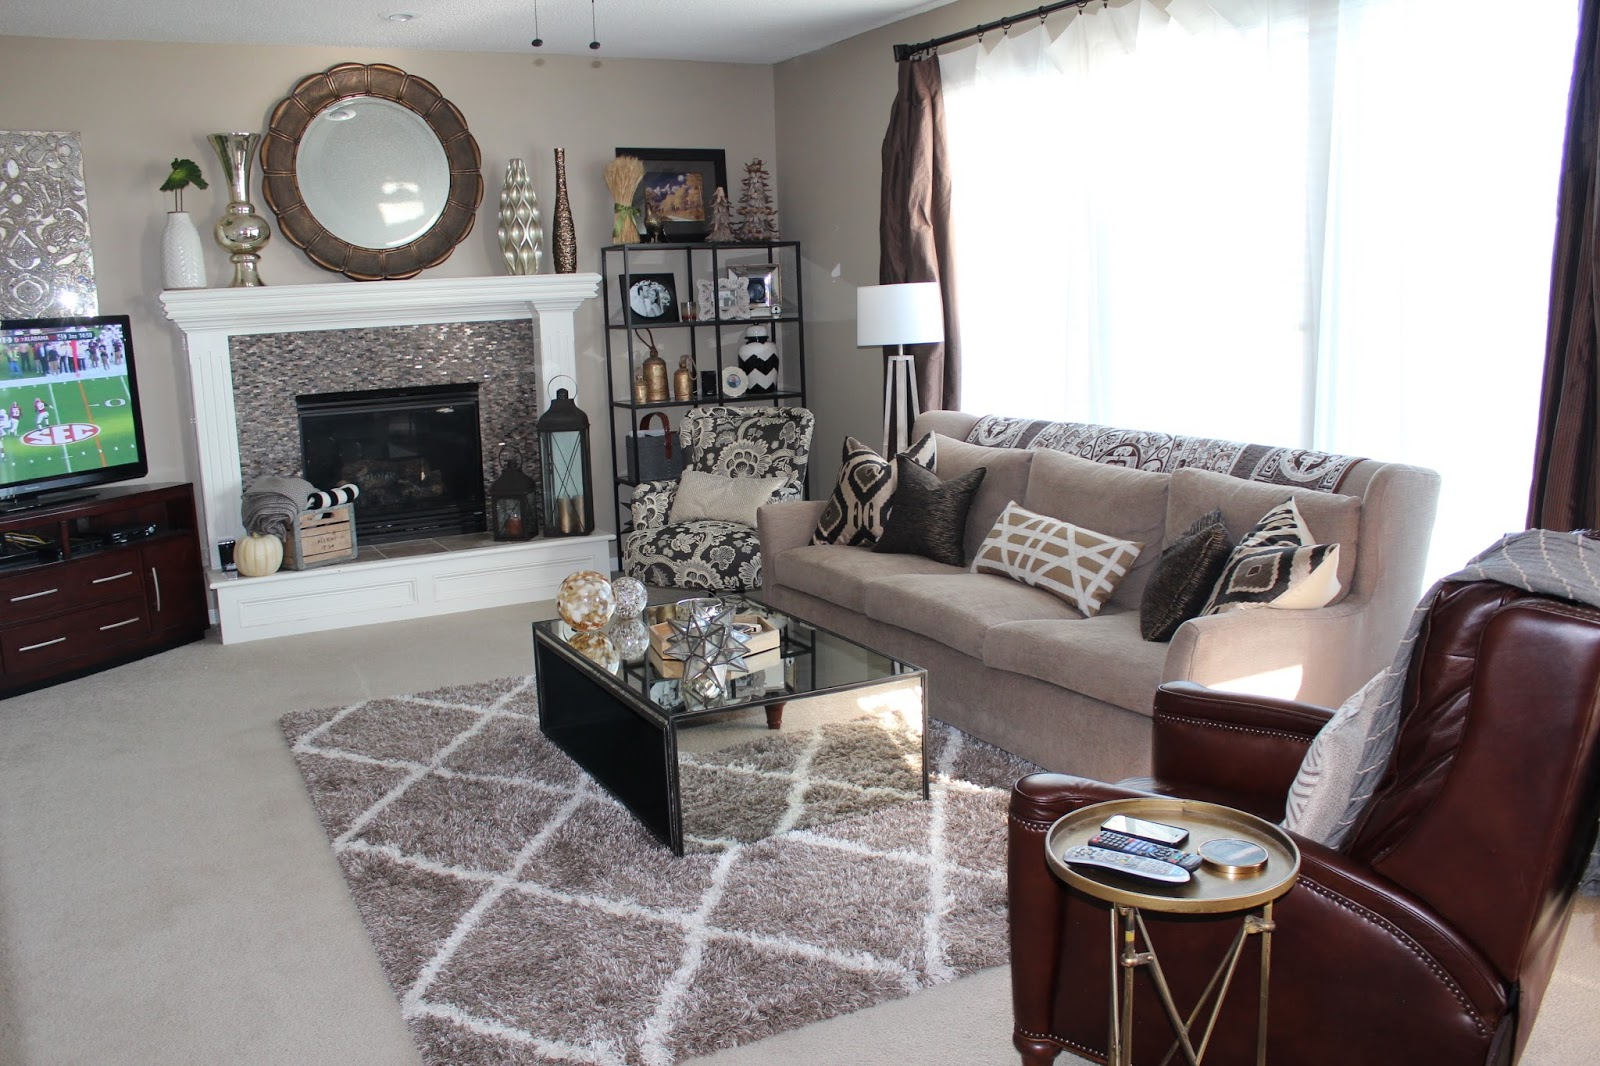 Is it ok to put an area rug over carpet carpet vidalondon for Can you put an area rug on carpet